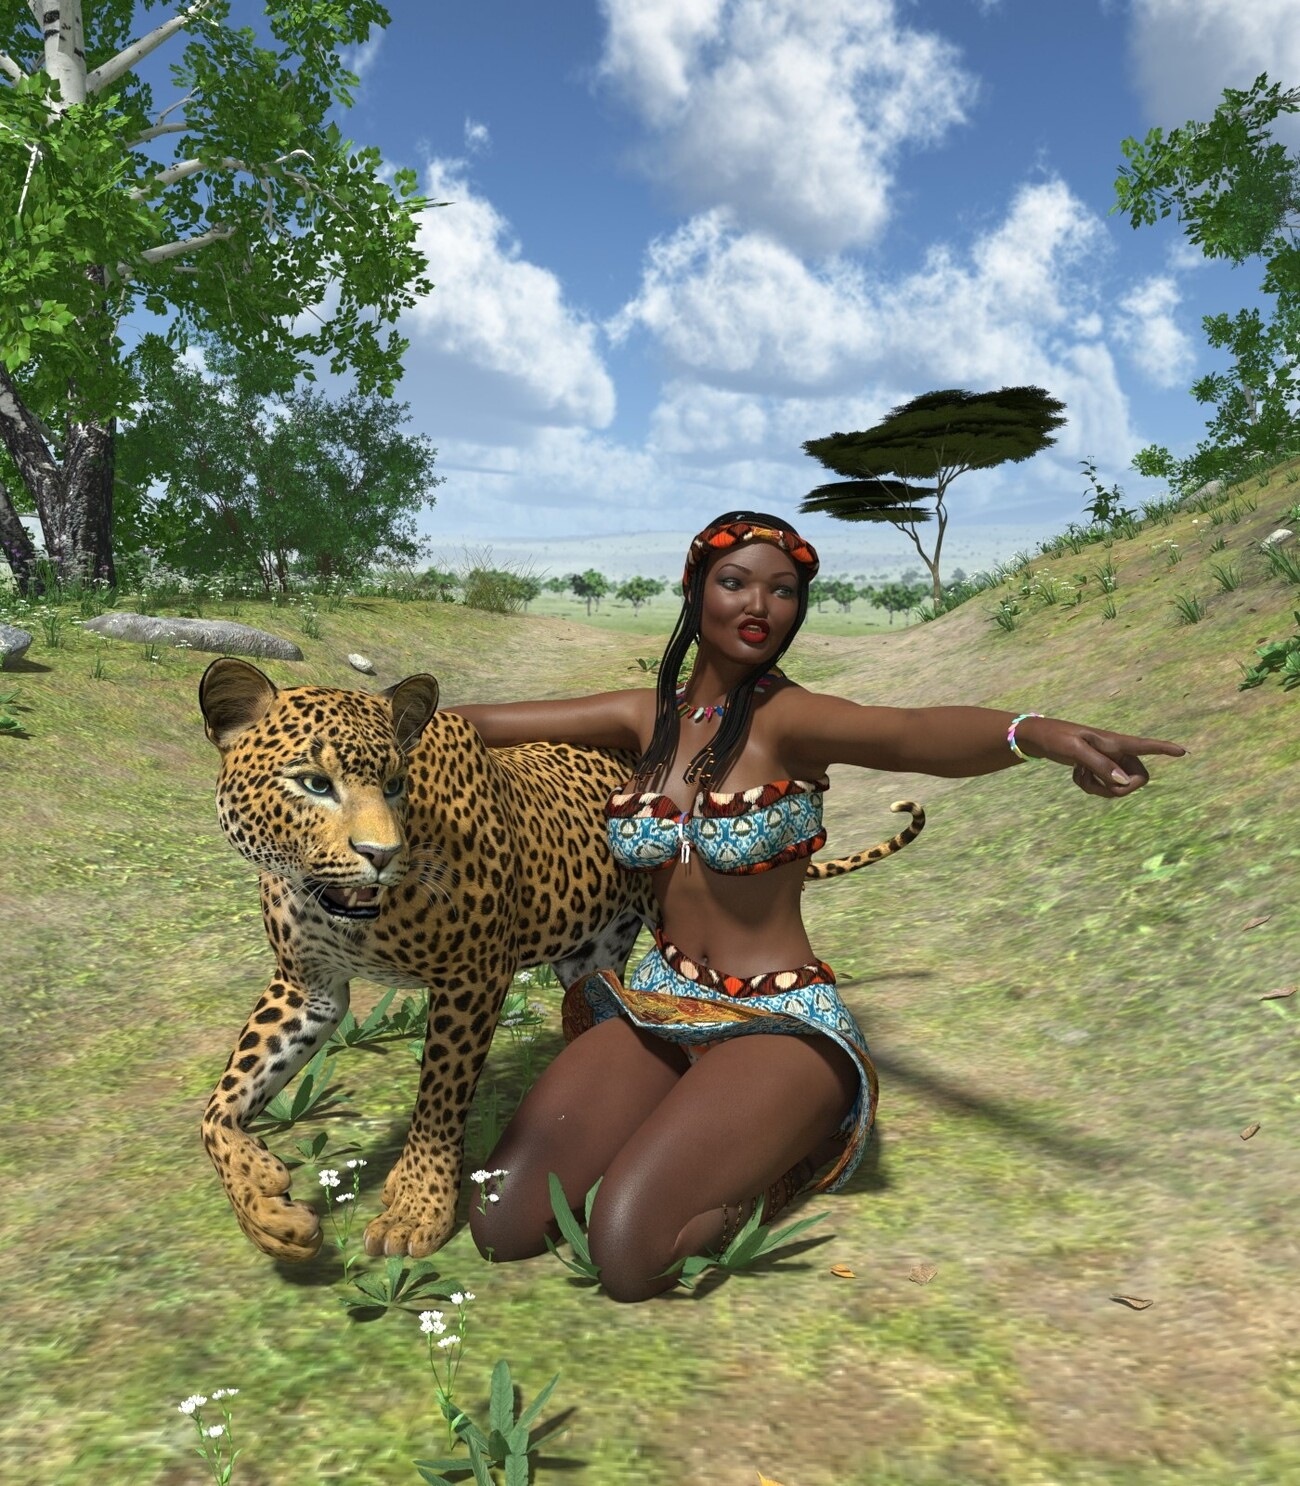 Big cat woman by poser4me